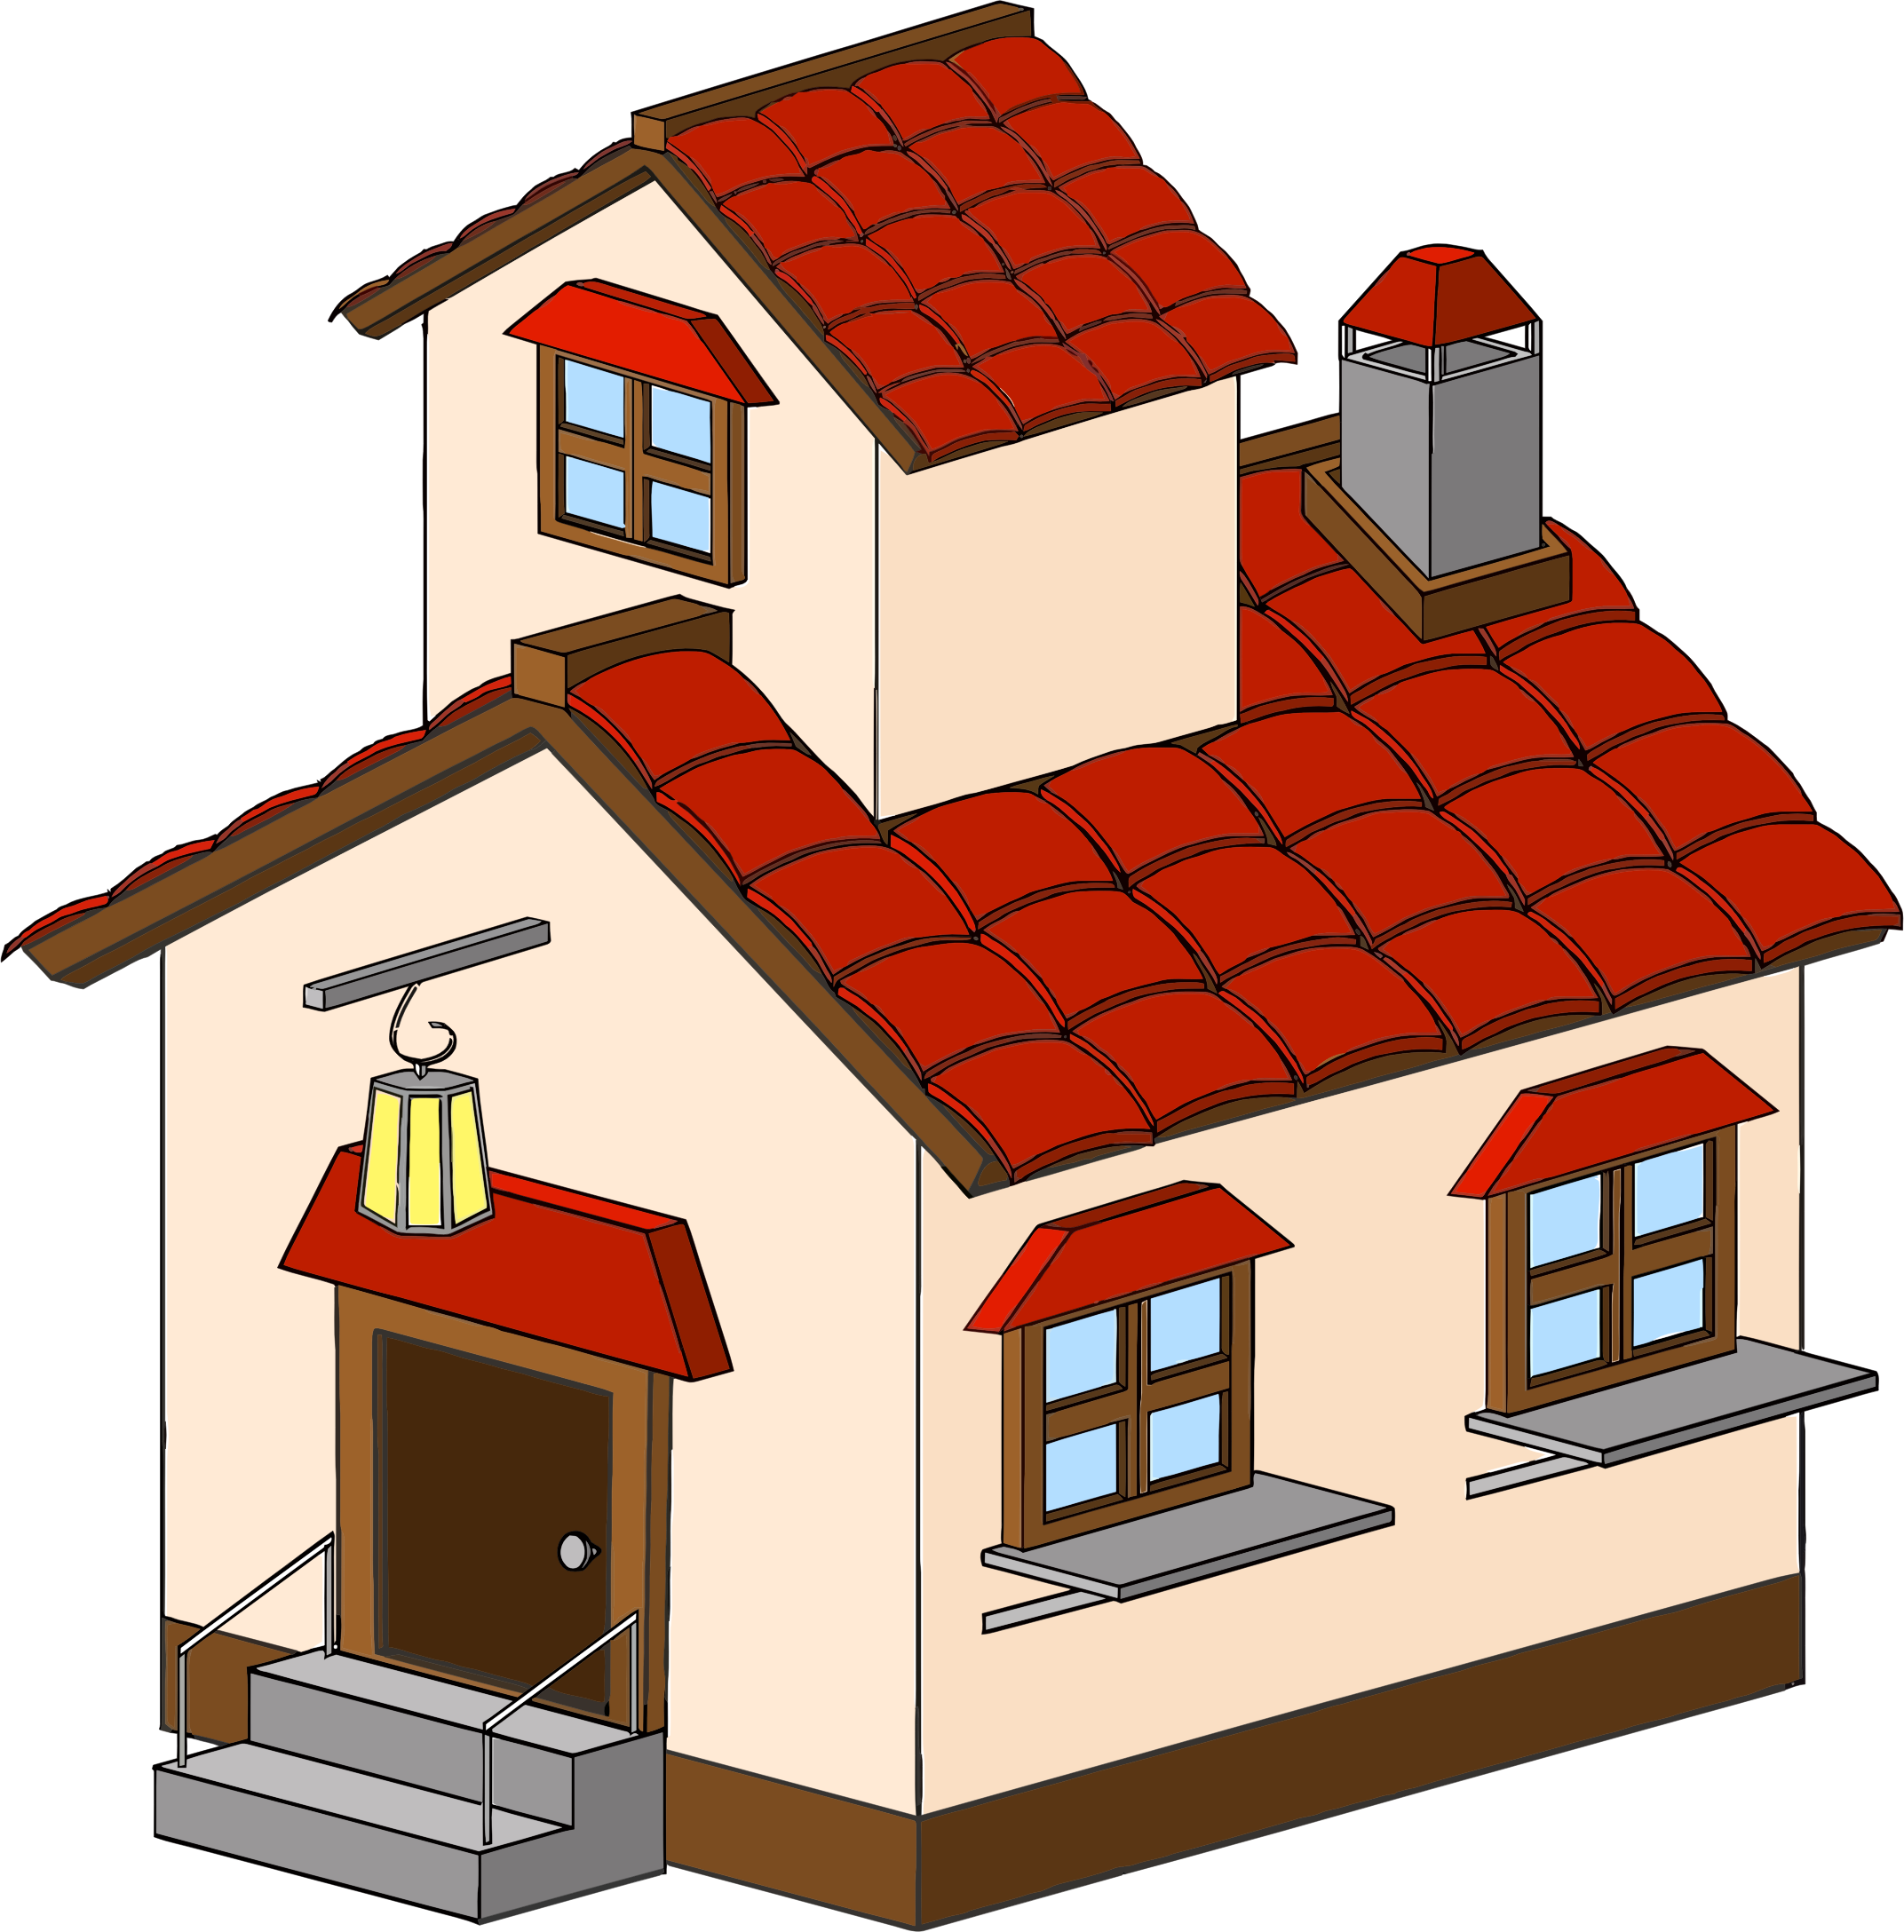 house clipart png - photo #33